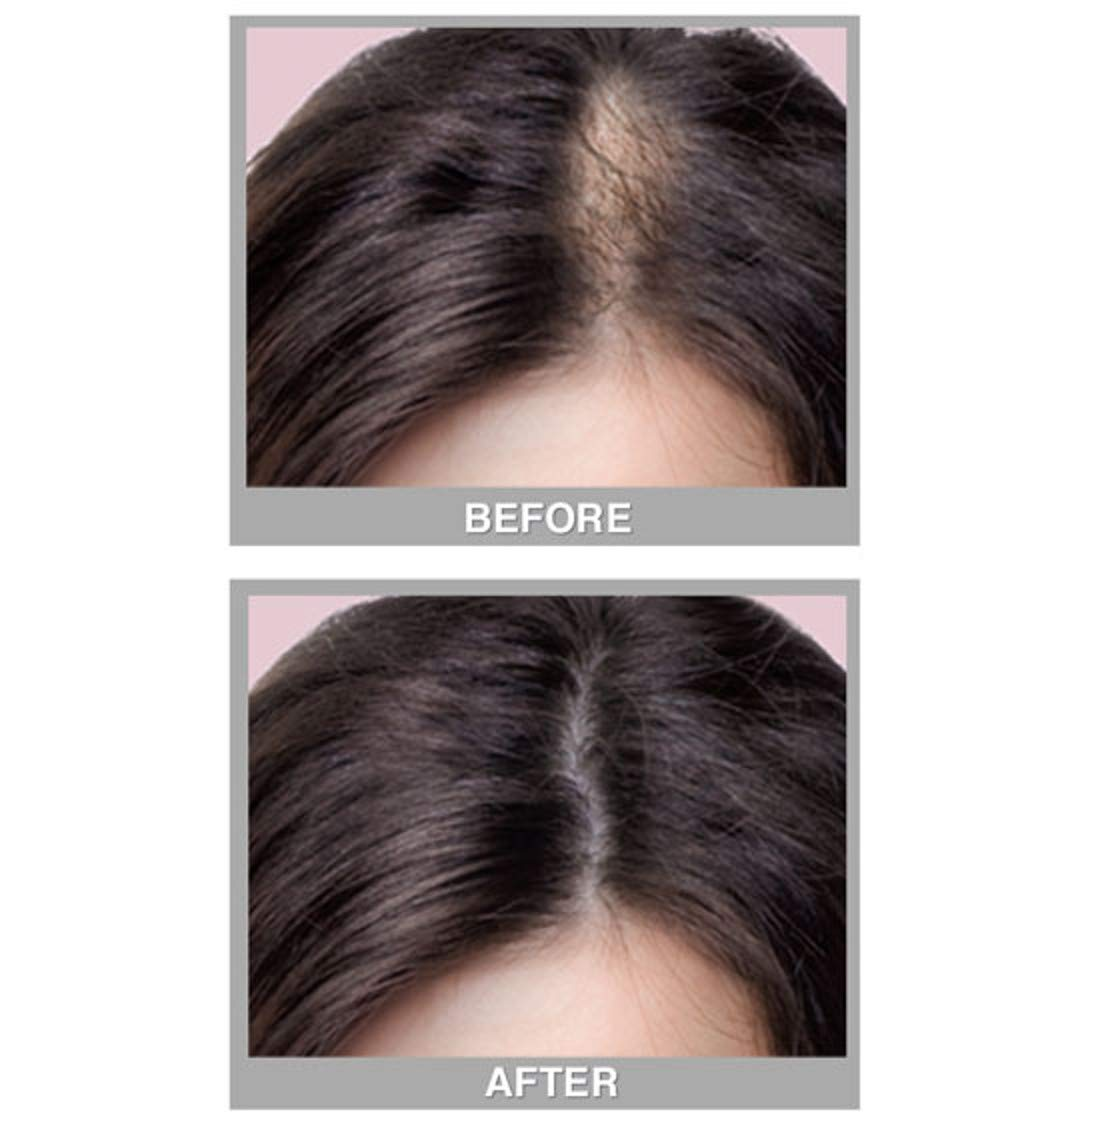 Cover Your Gray Fill in Powder - Medium Brown- Root Cover Up and Hair Volumizing Powder, Hair Filler For Thinning Hair, Root Touch Up Powder, Instantly Fills In Thinning Areas : Hair And Scalp Treatments : Beauty